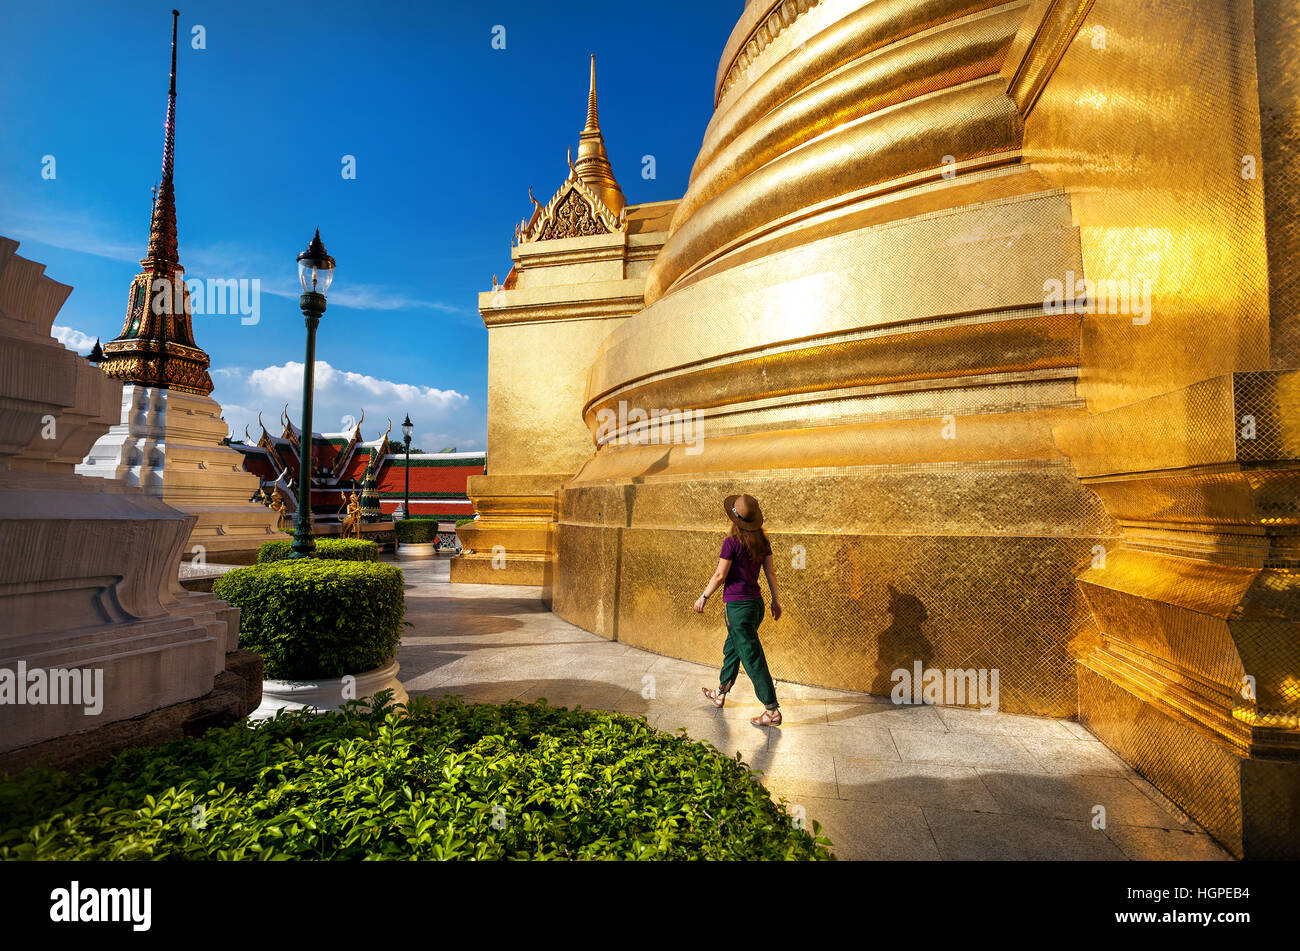 Woman tourist walking in the Temple of the Emerald Buddha with Golden Stupa in Bangkok at sunset - Stock Image